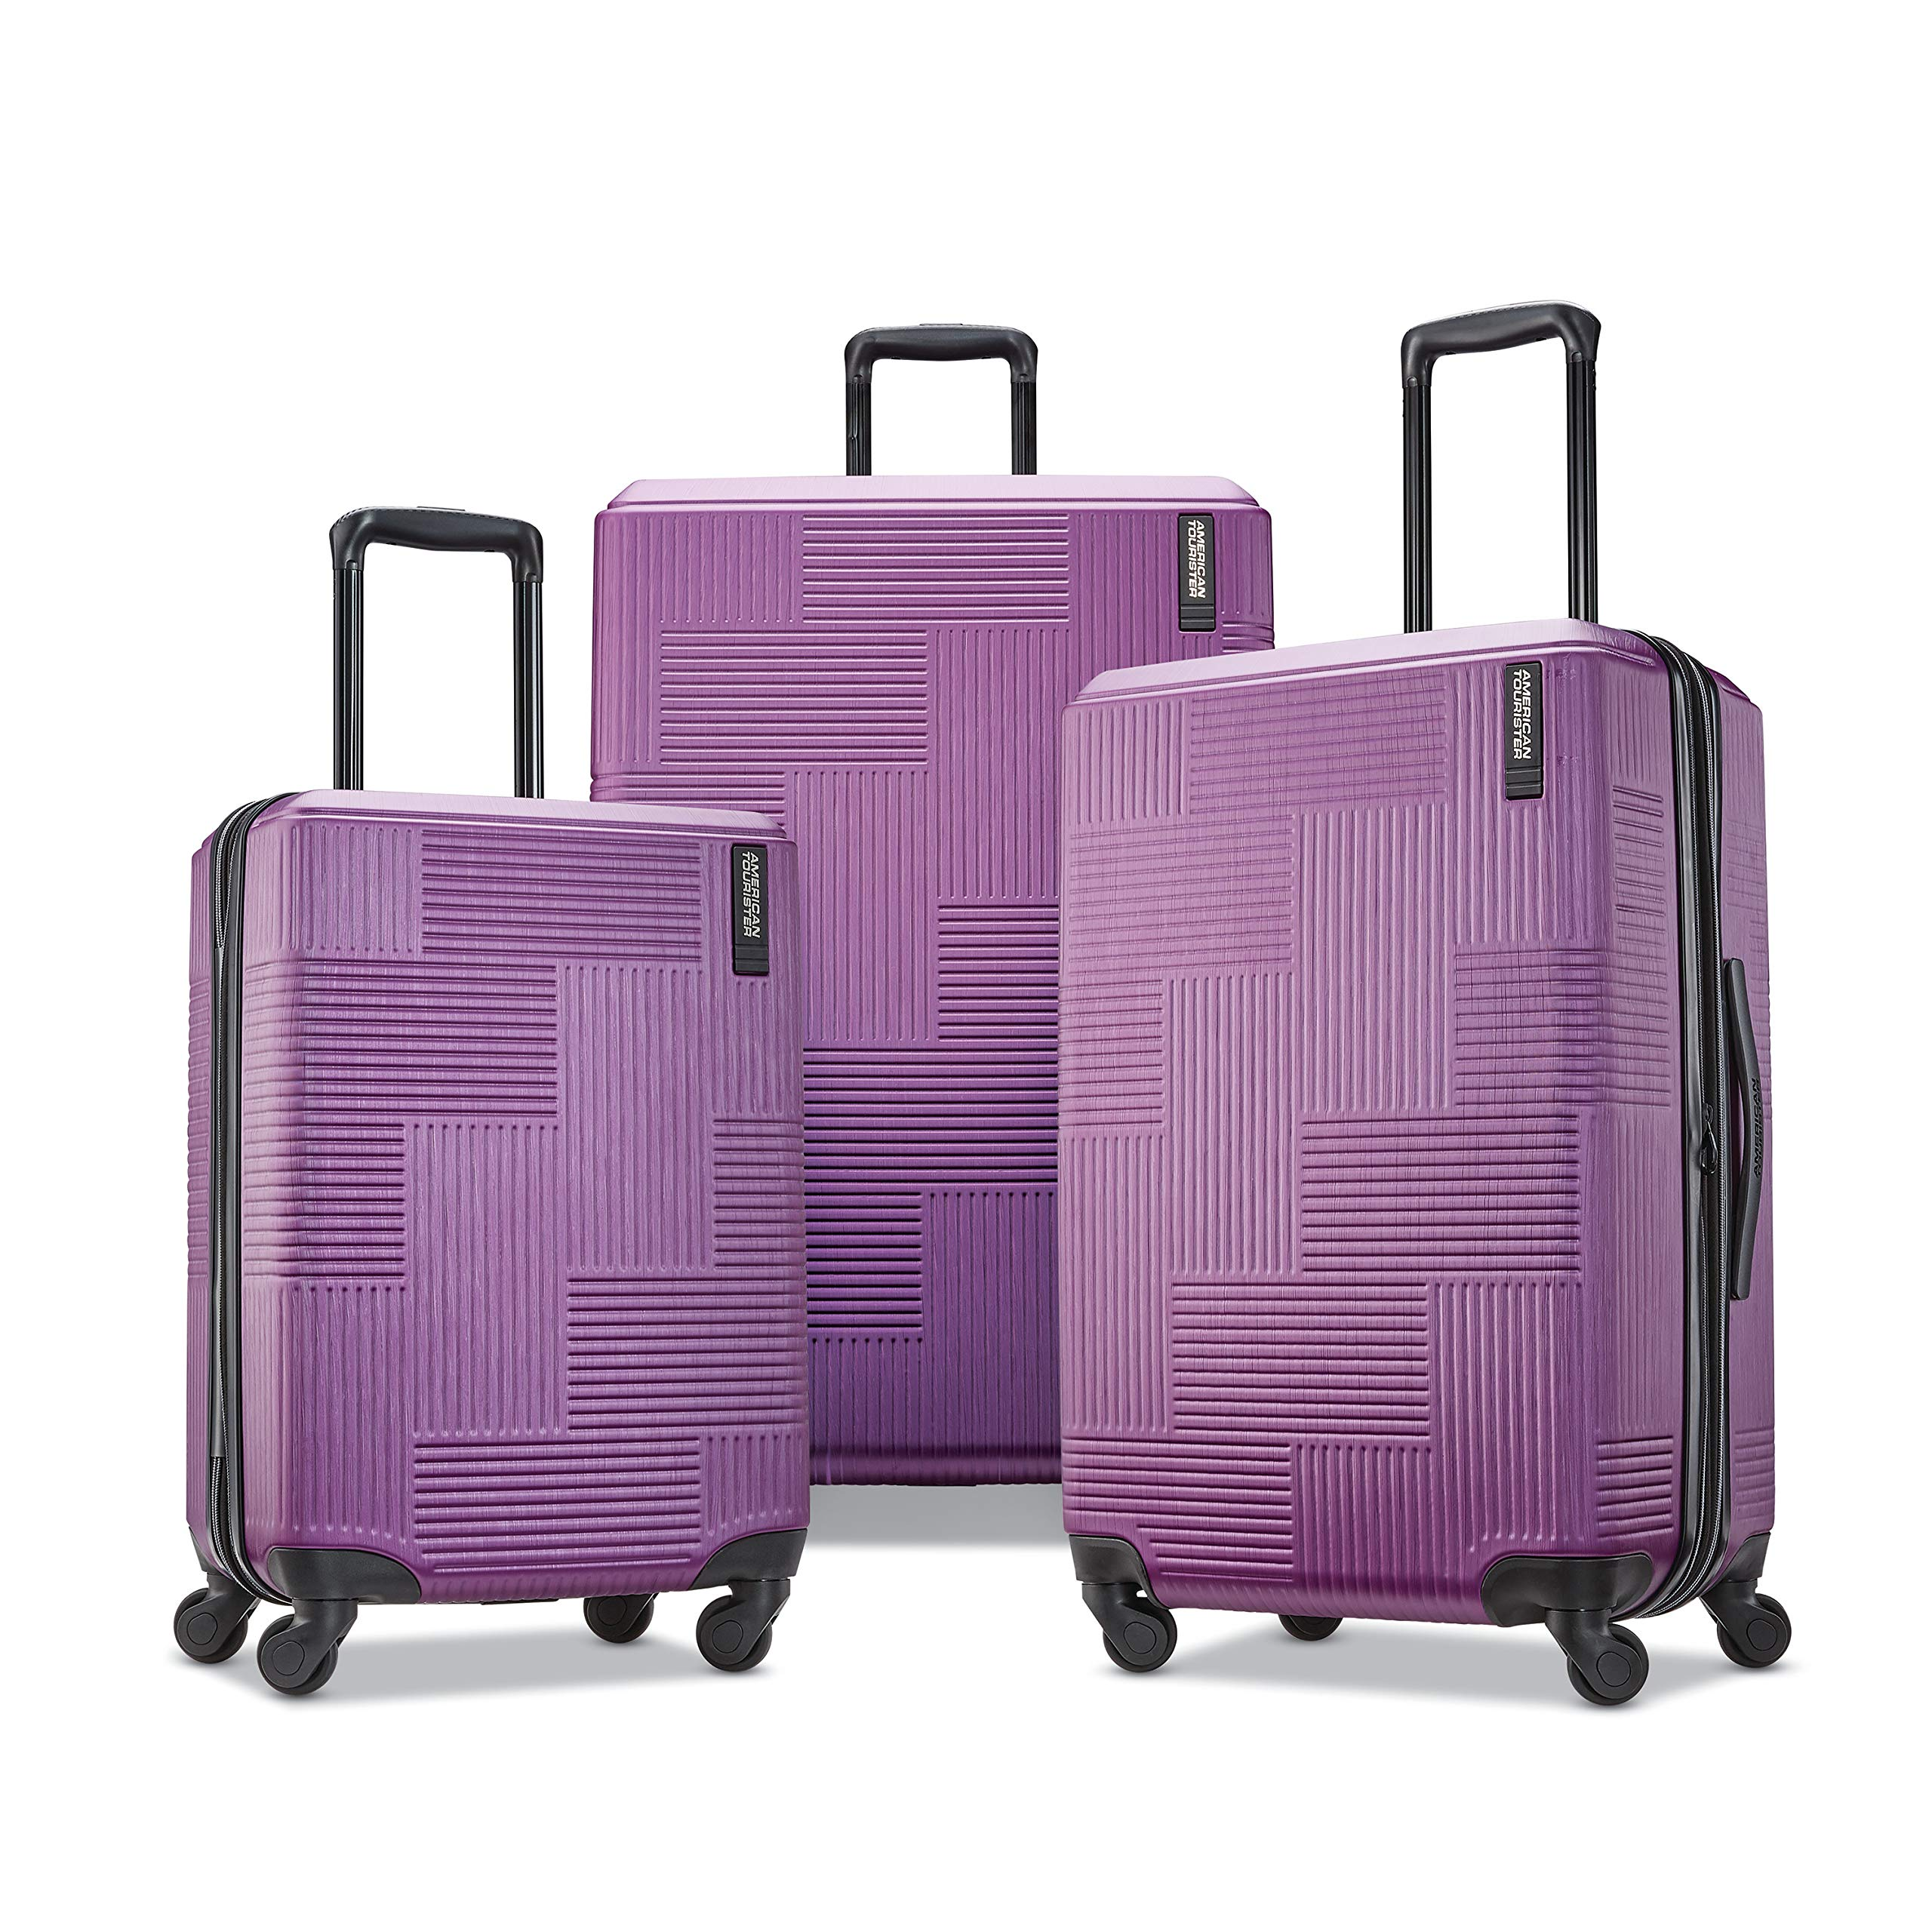 American Tourister 3-Piece Set, Power Plum by American Tourister